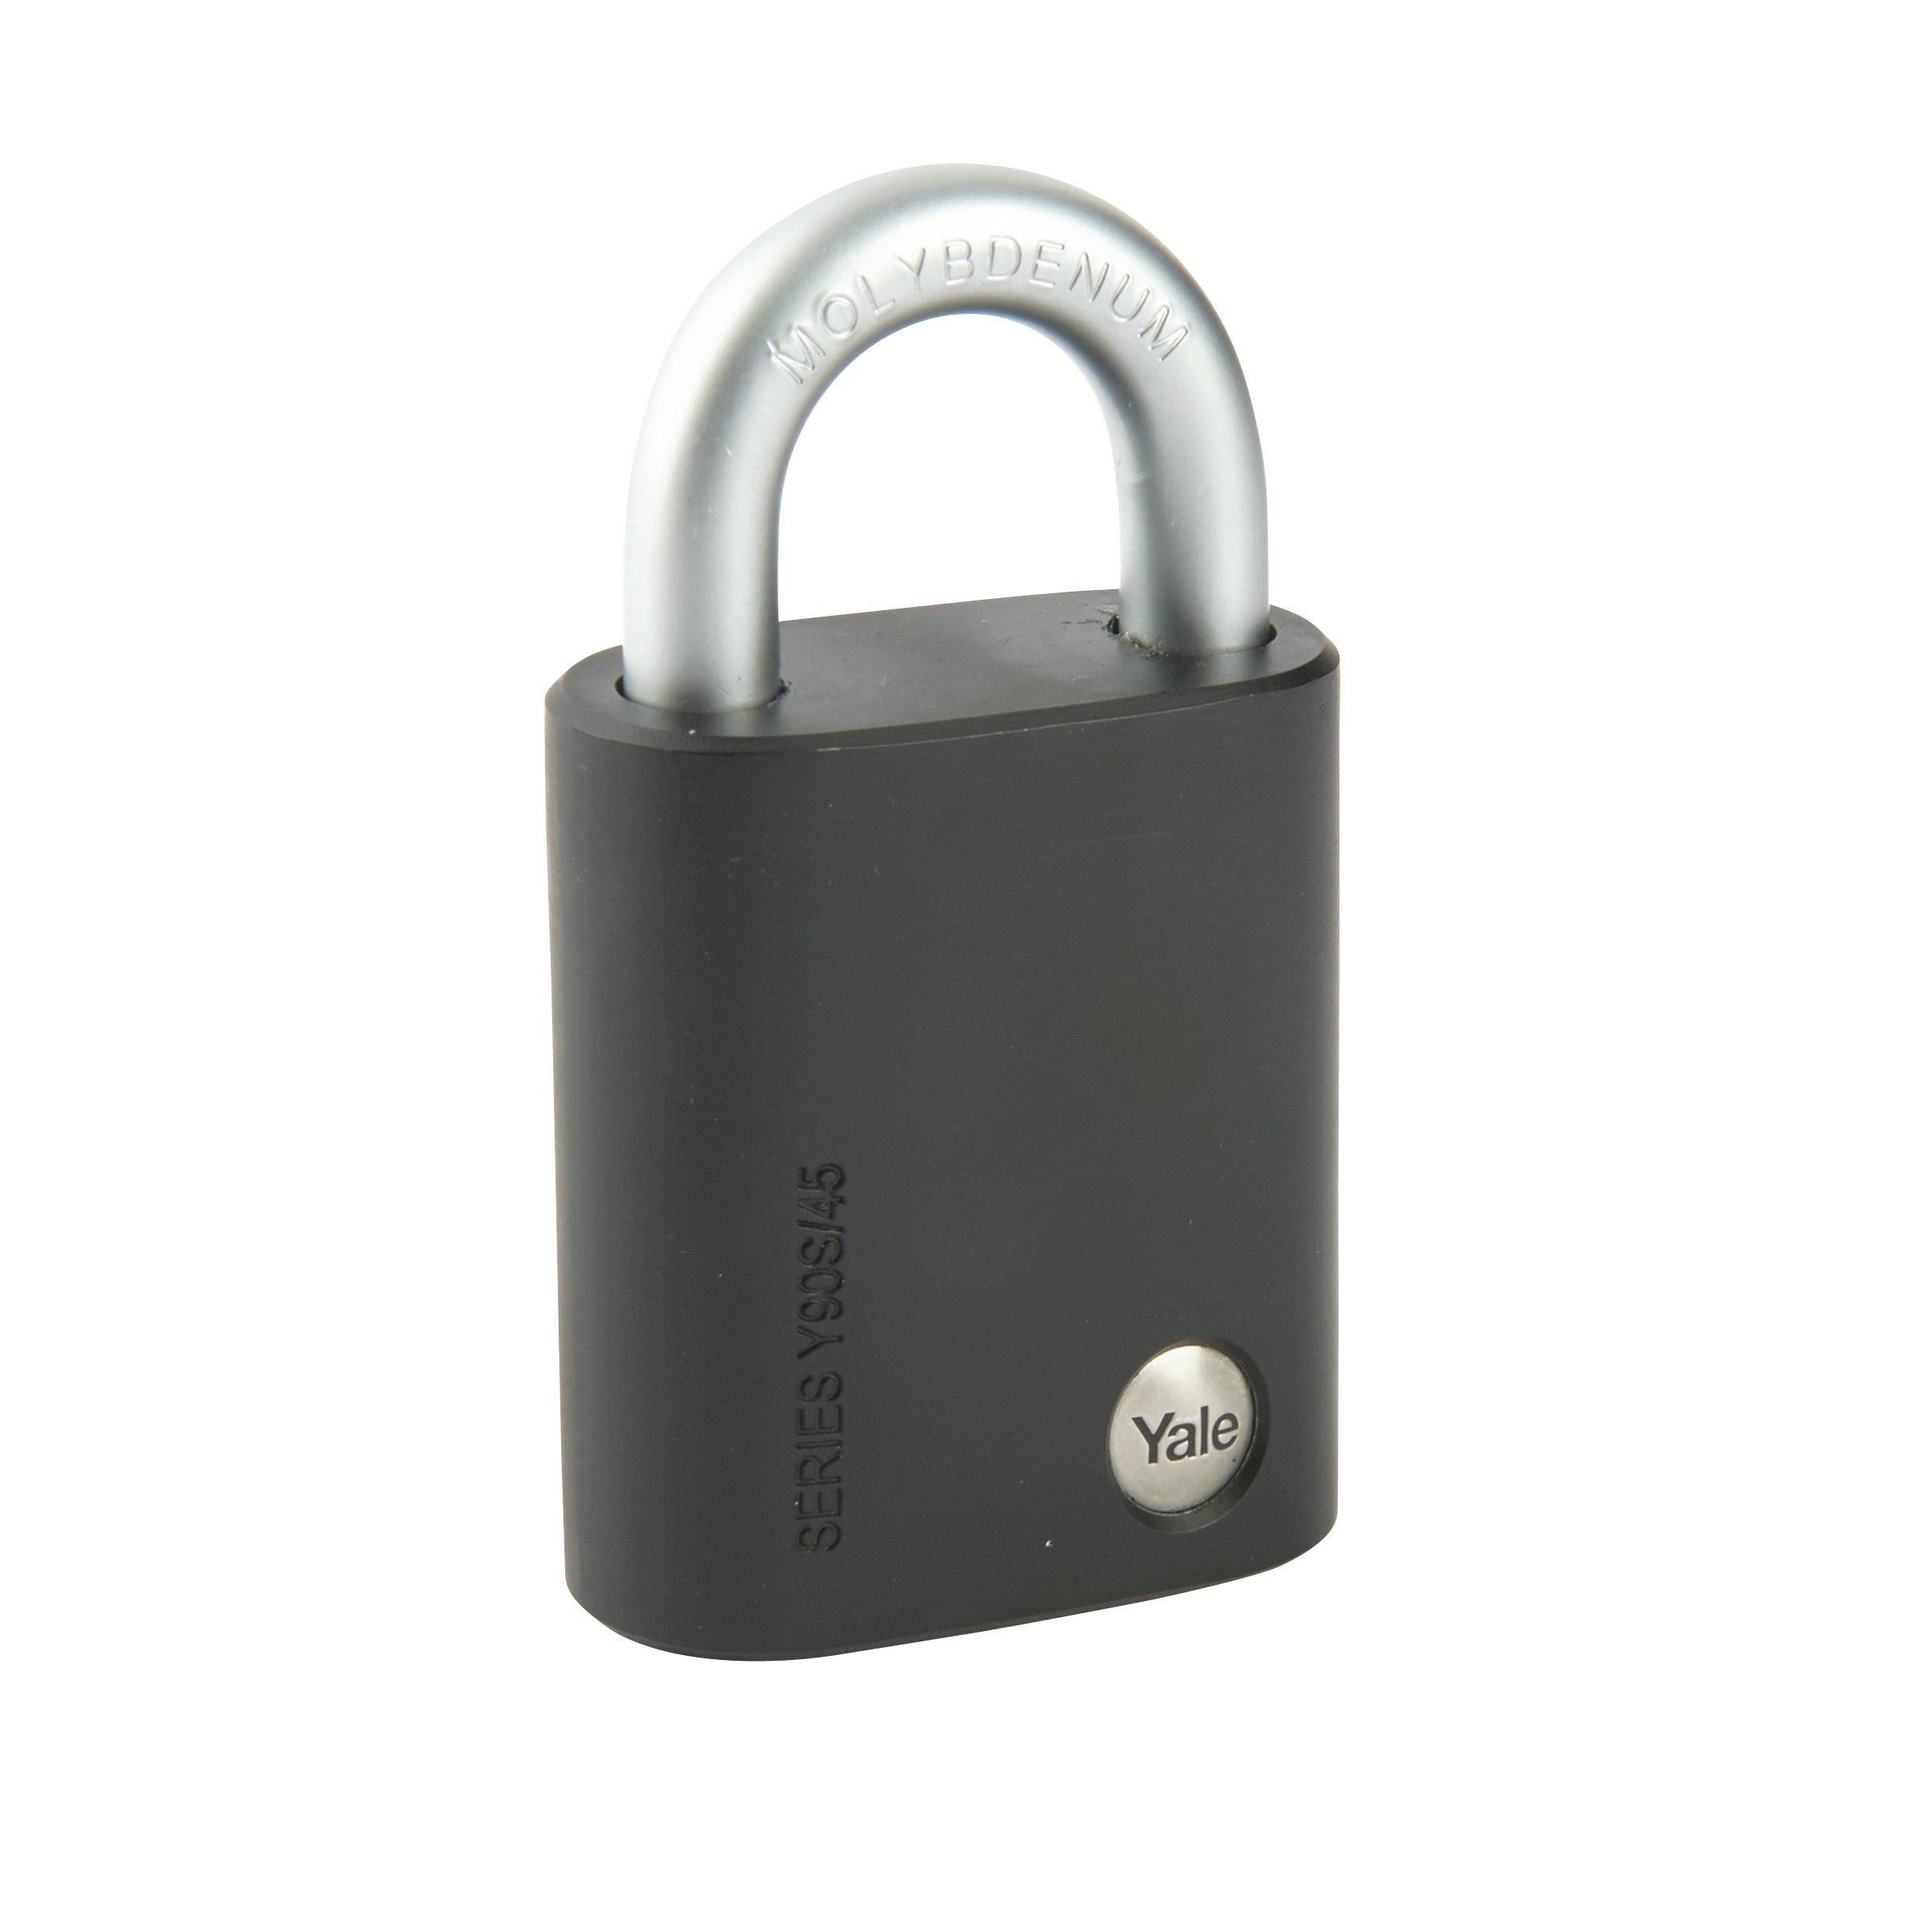 Y90S Maximum Security Steel Padlock